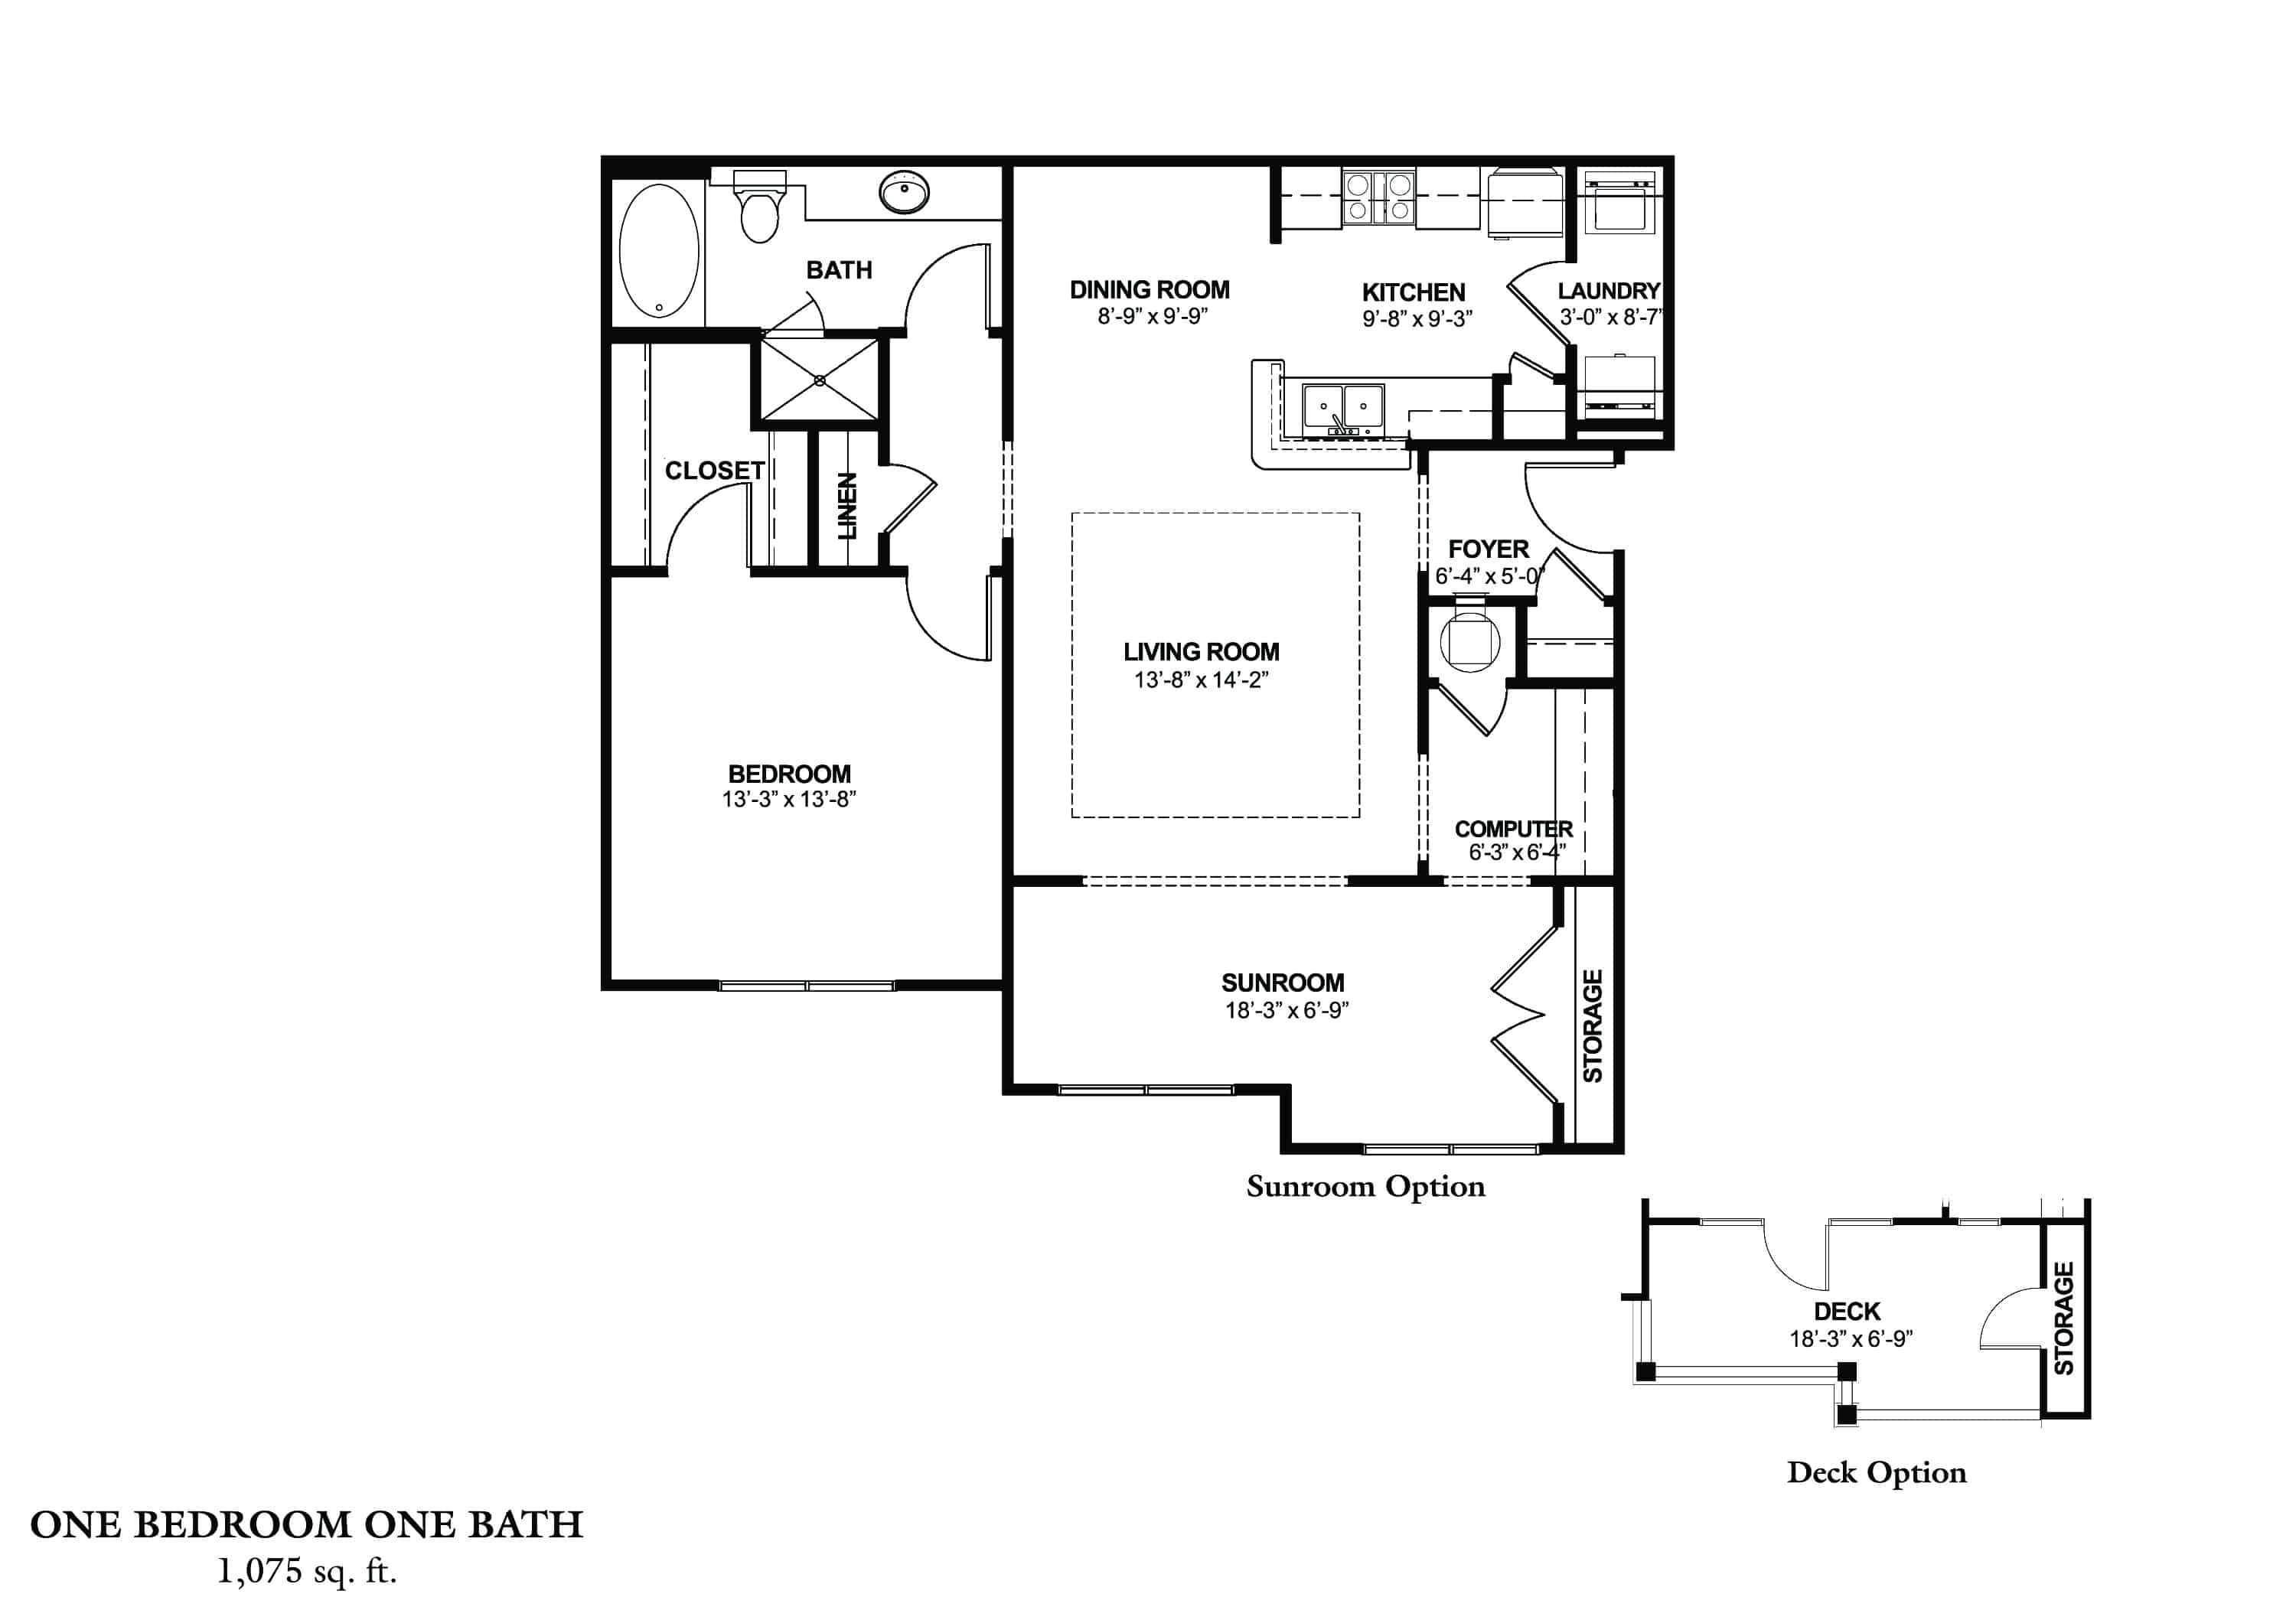 One Bedroom (ASR) - Phase II Approx. 1,075 sq. ft. with Sunroom Beds 1 Baths 1 in Greystone's Columbus GA Apartments